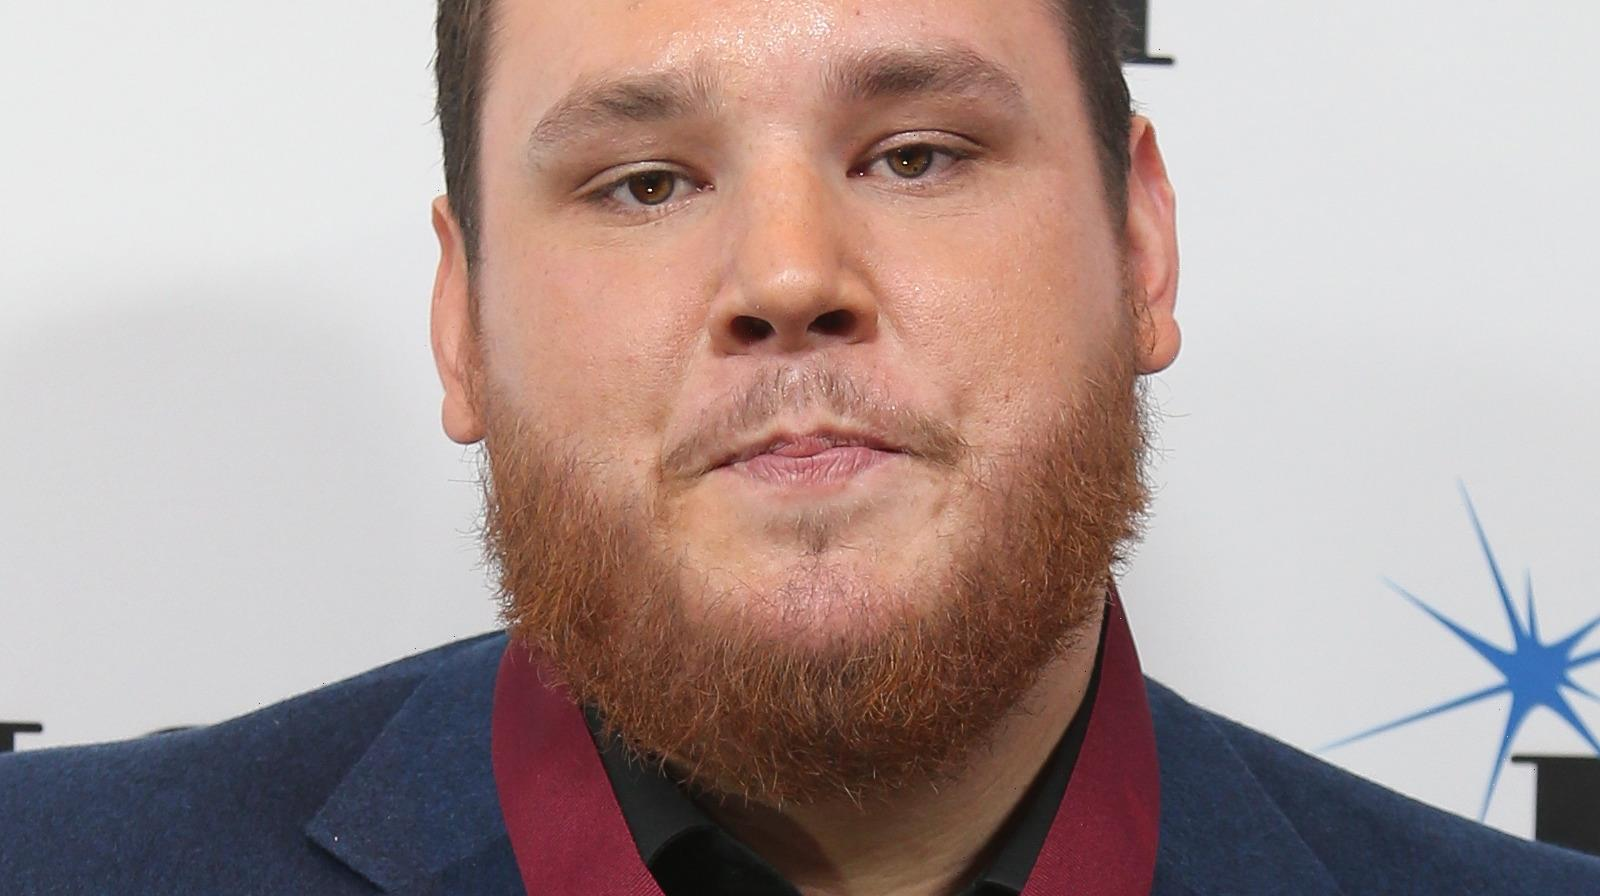 The Real Meaning Behind Luke Combs' 'Lovin' On You'